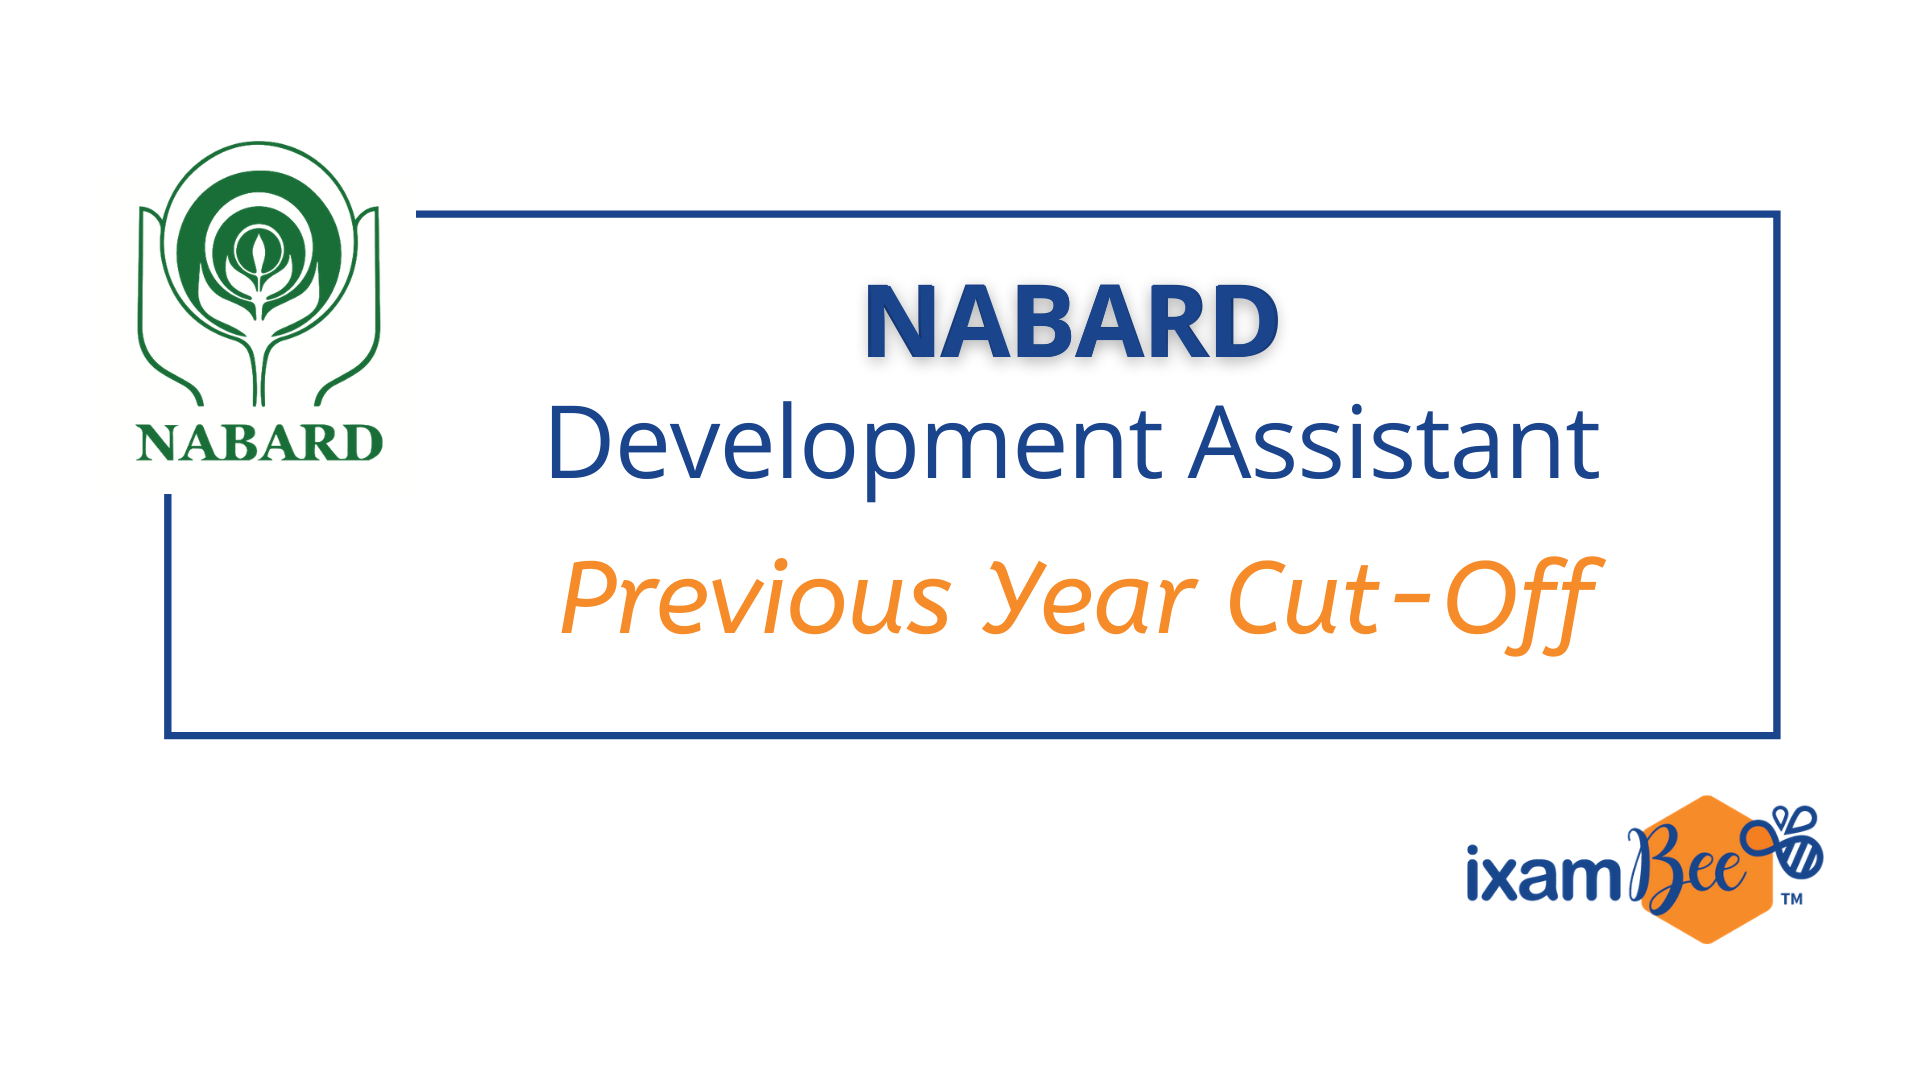 NABARD Development Assistant Previous Year Cut Off